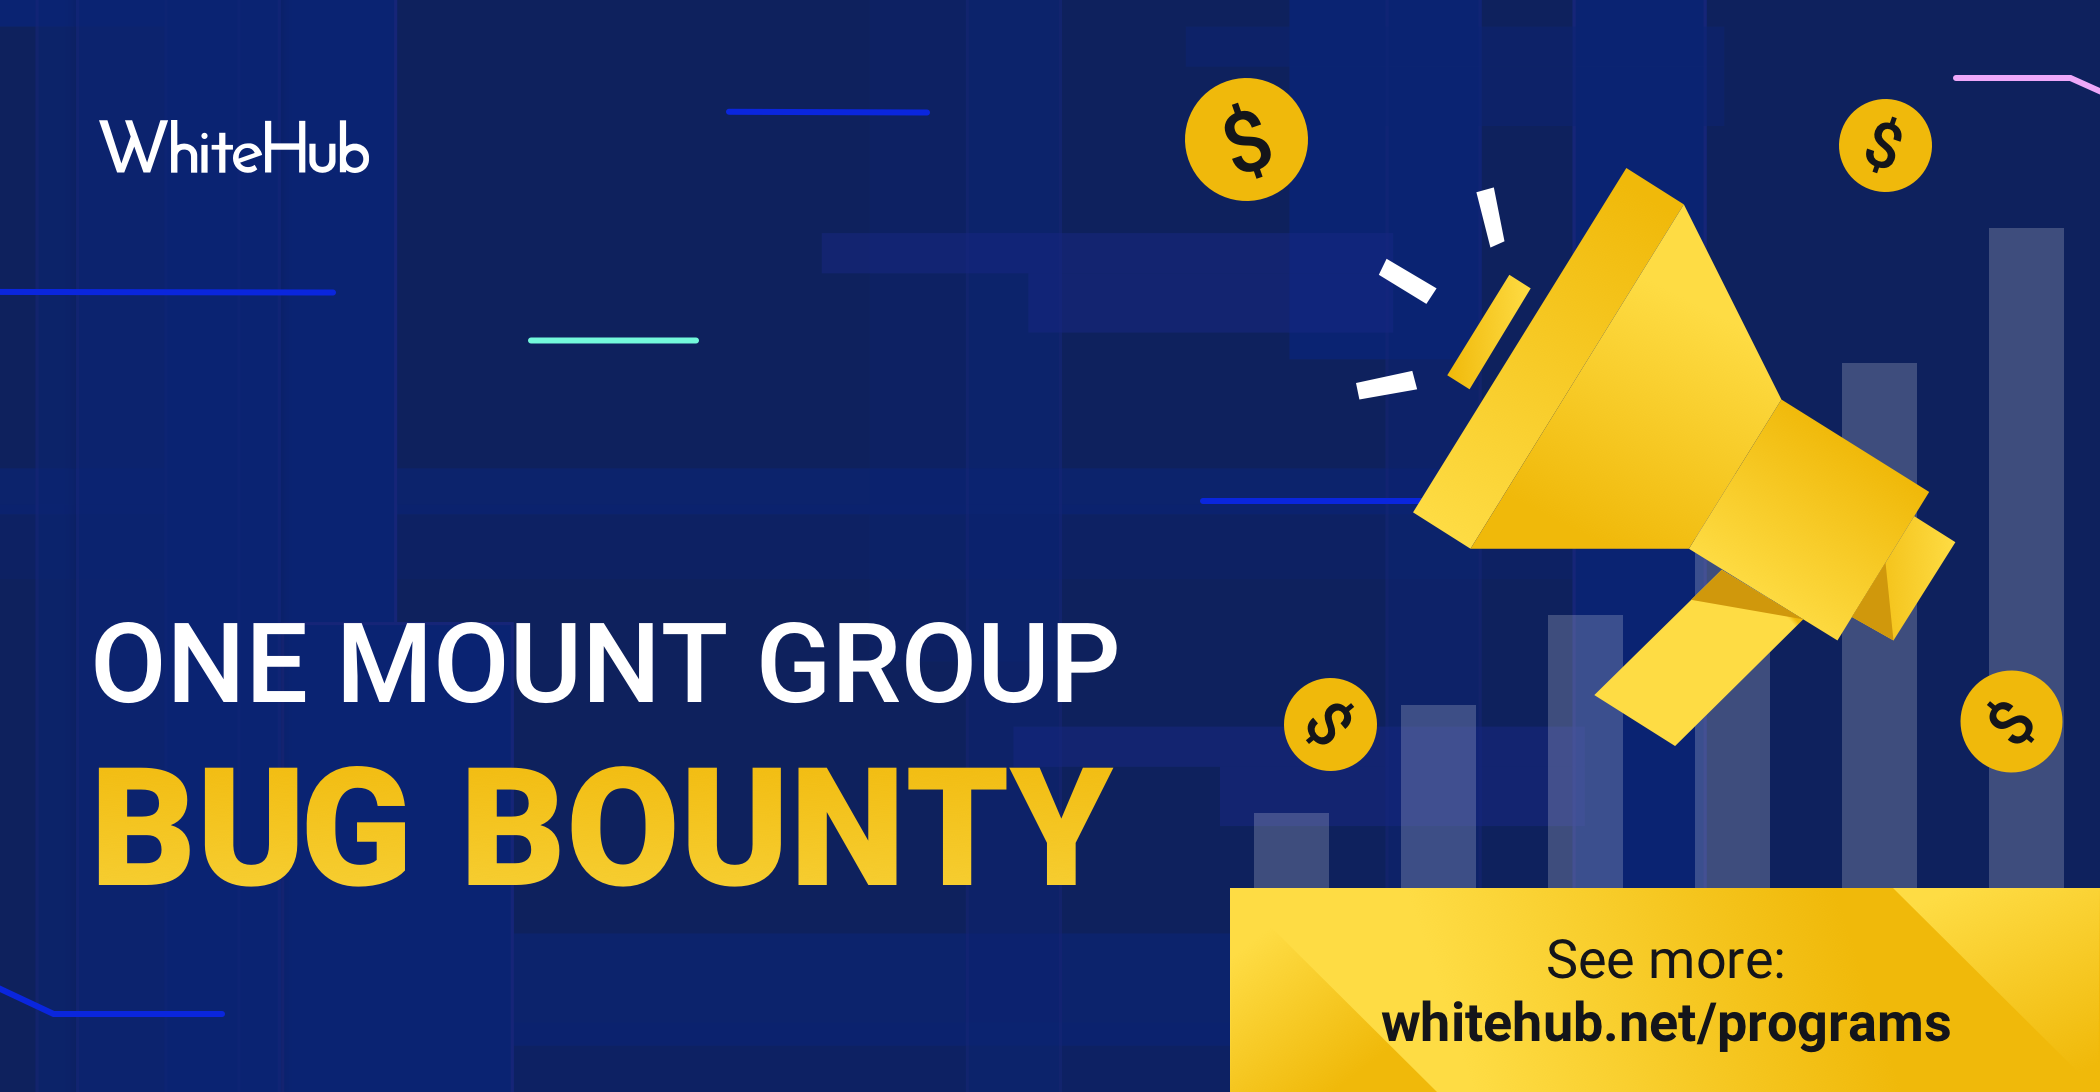 One Mount Group Bug Bounty Announced